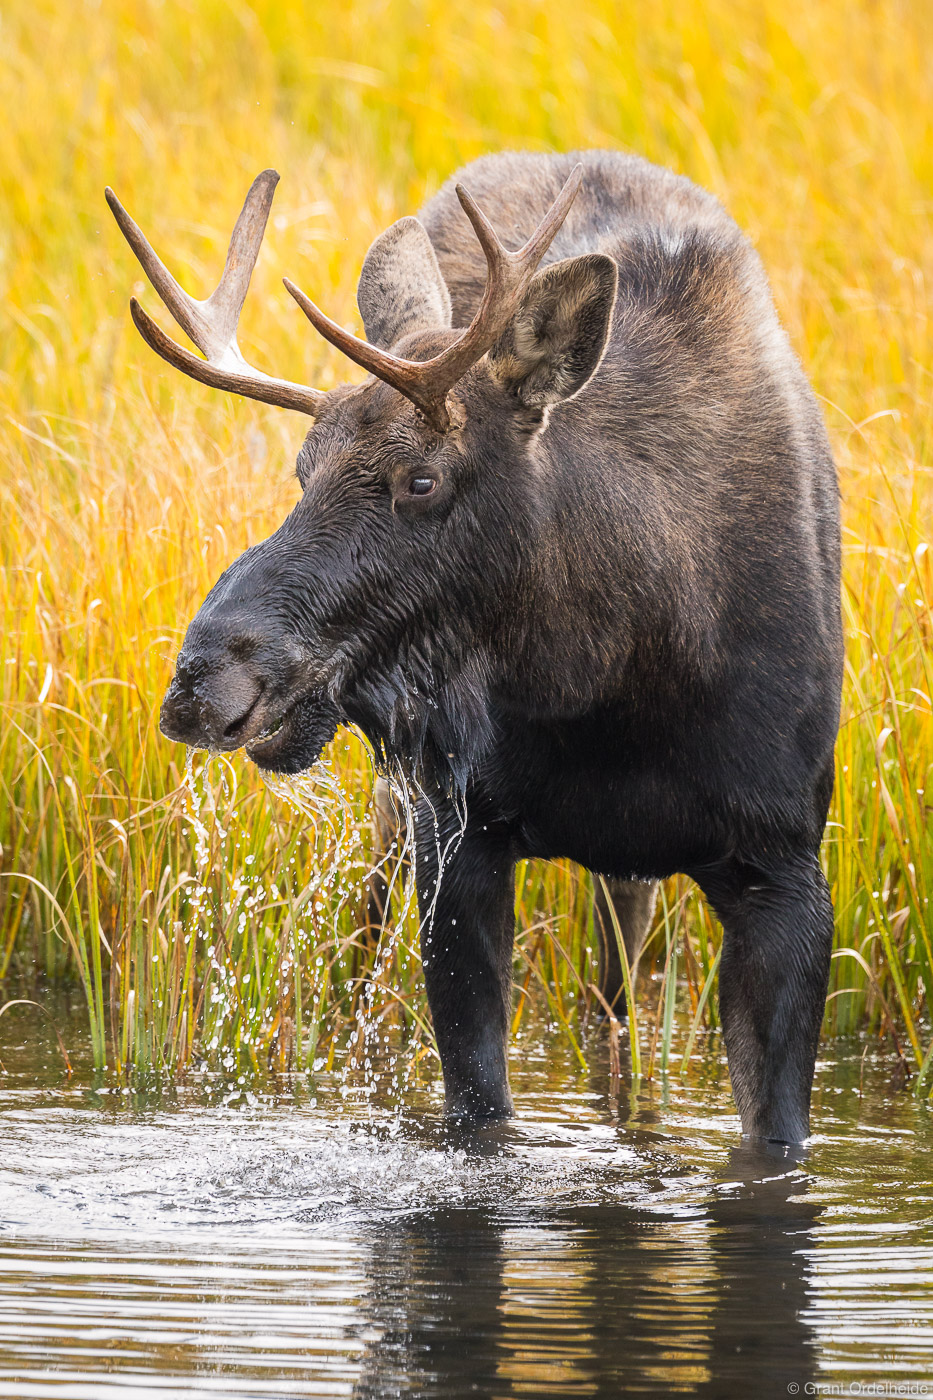 A young moose drinking from a small pond in Grand Teton National Park.